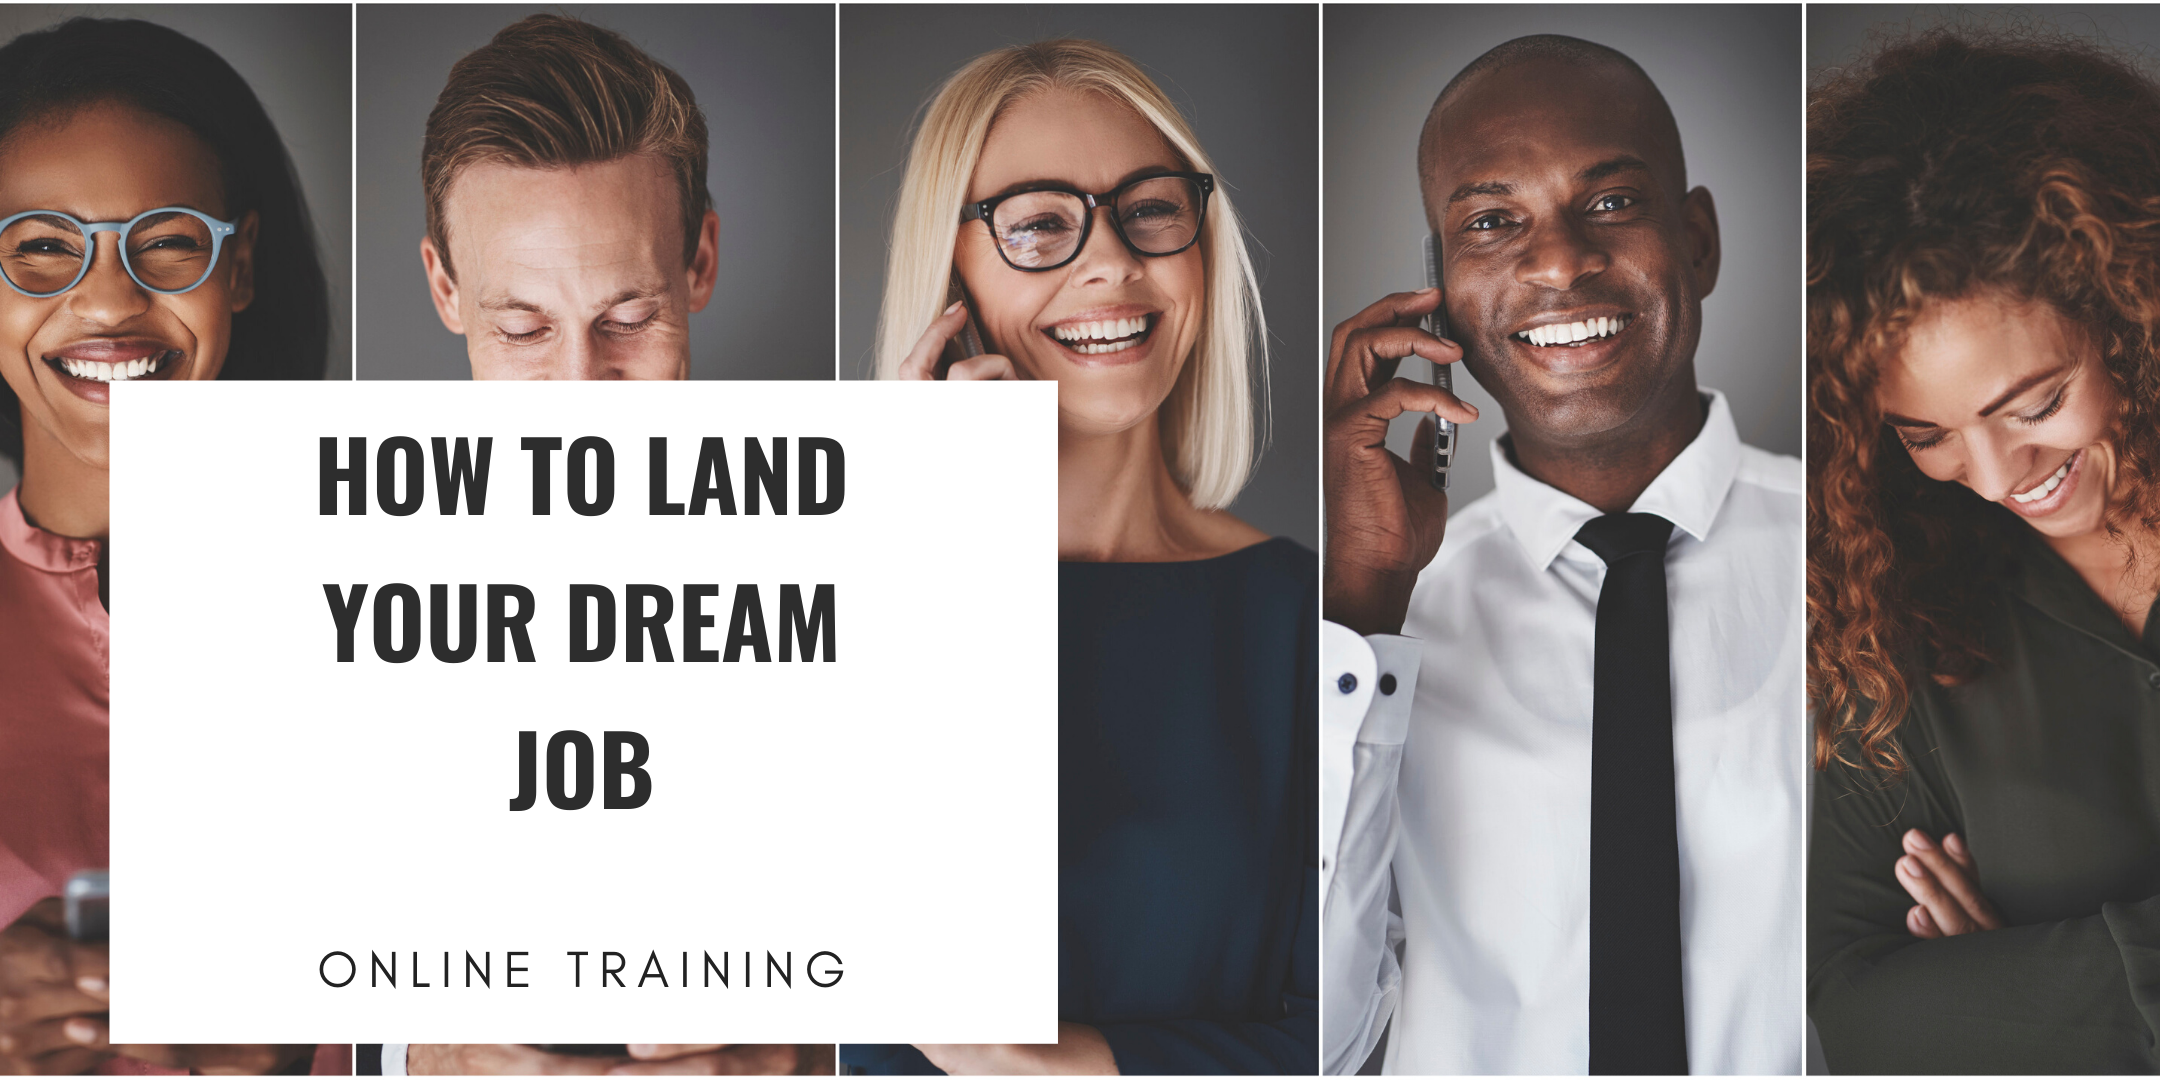 FREE TRAINING: HOW TO LAND YOUR DREAM JOB (CAREER WORKSHOP) Austin, TX